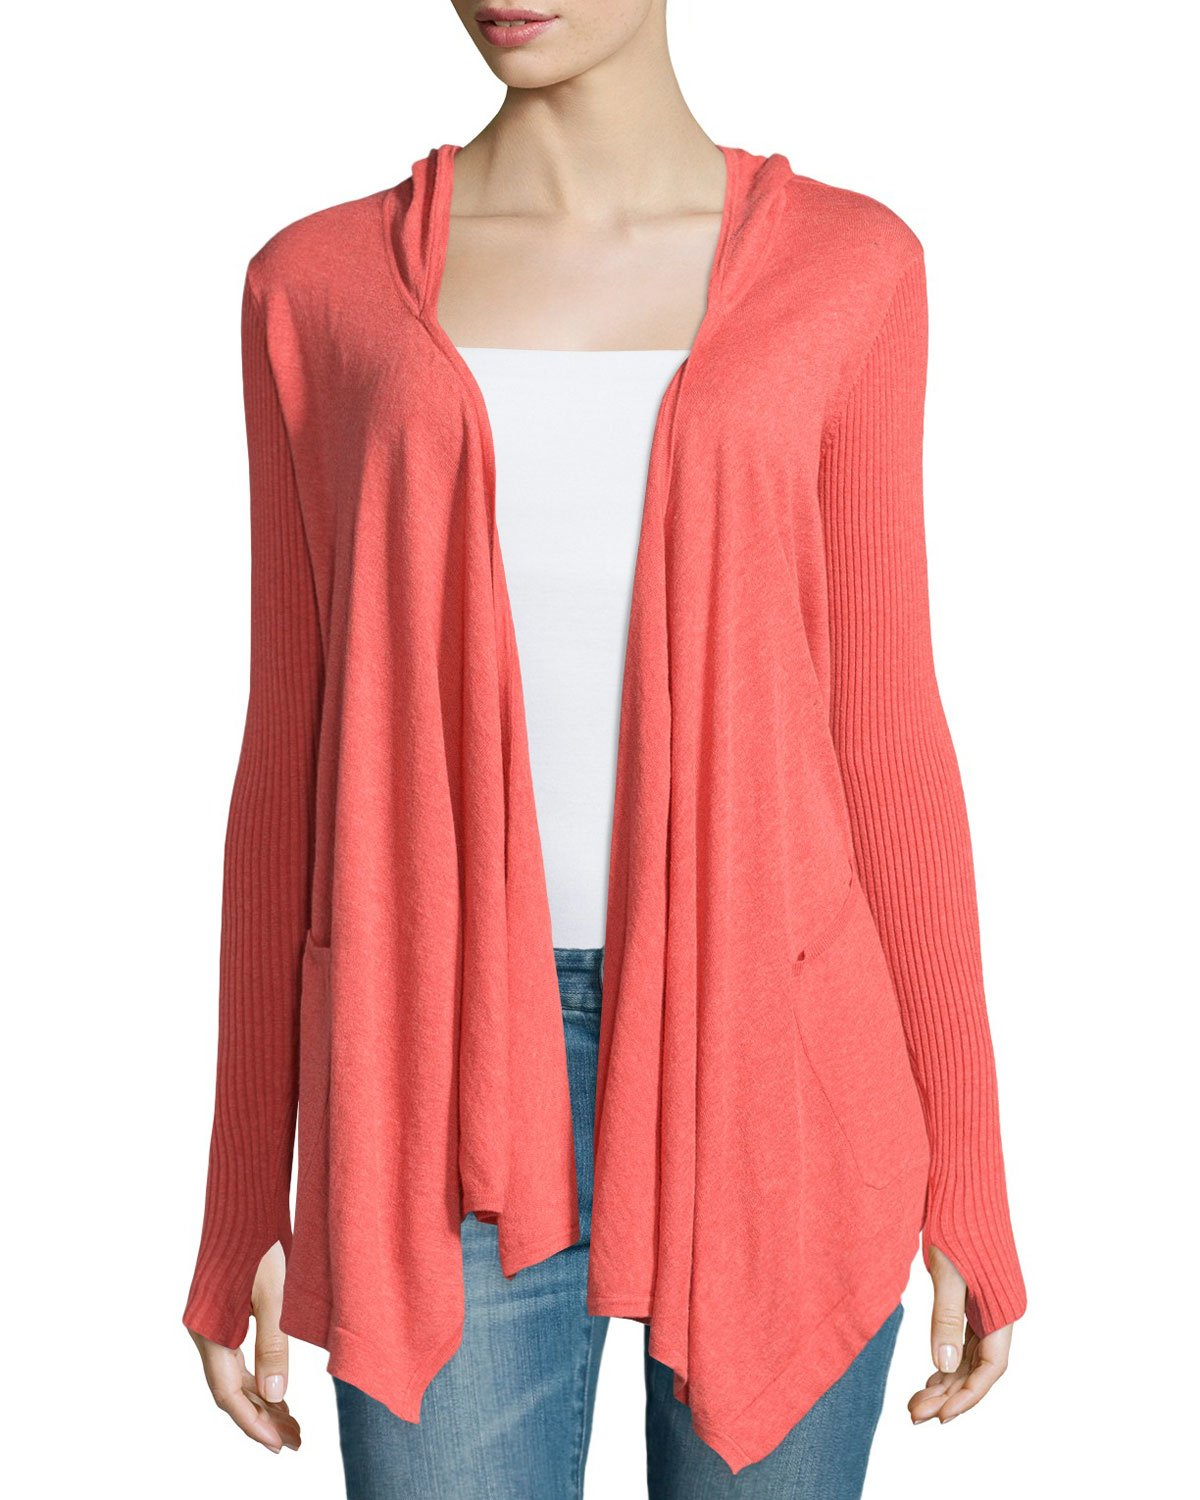 Minnie rose Cotton Hooded Open-front Duster Cardigan in Pink | Lyst